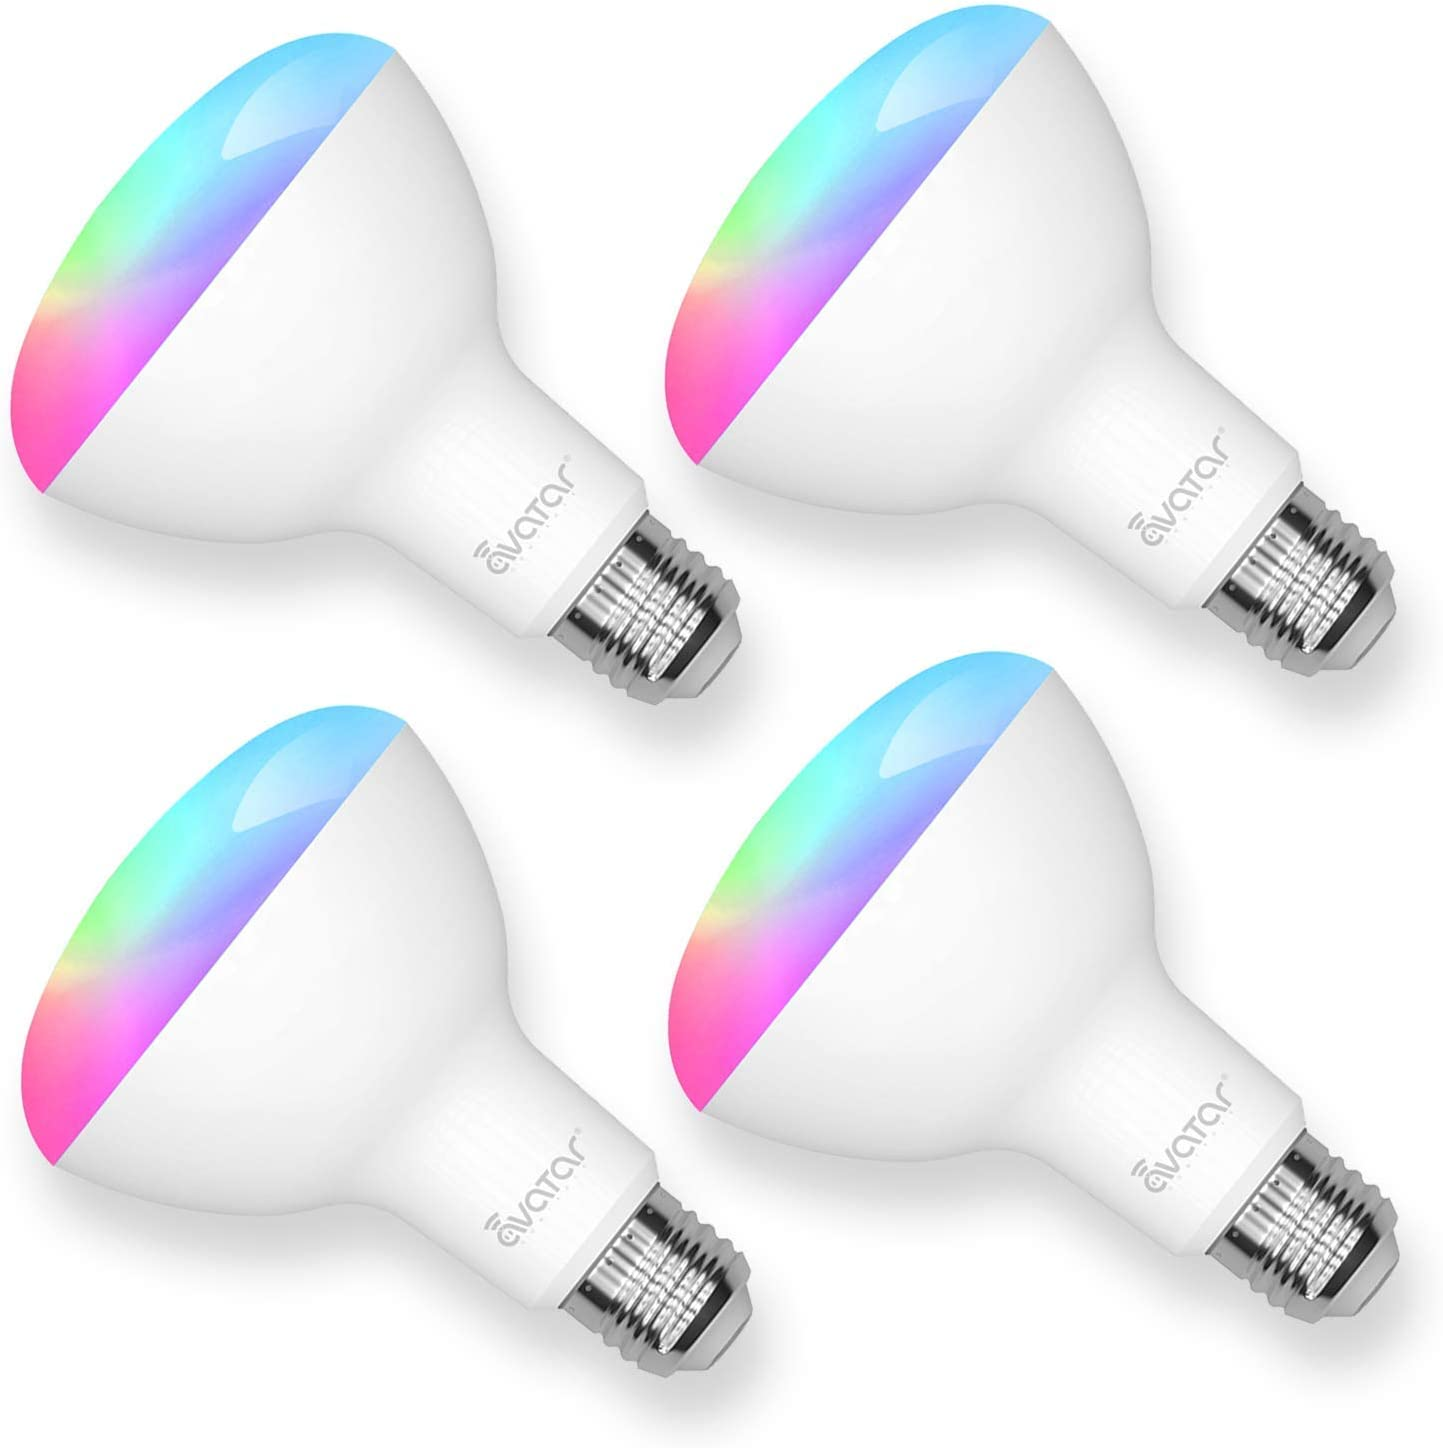 BR30 Smart Light Bulbs That Work with Alexa/Google Home/Smart Life/TuyaSmart, 2.4 GHz Wi-Fi, 13W Floodlight LED Color Changing Light Bulbs, E26 Base, 1200LM, RGBCW Colors, No Hub Required, 4 Pack